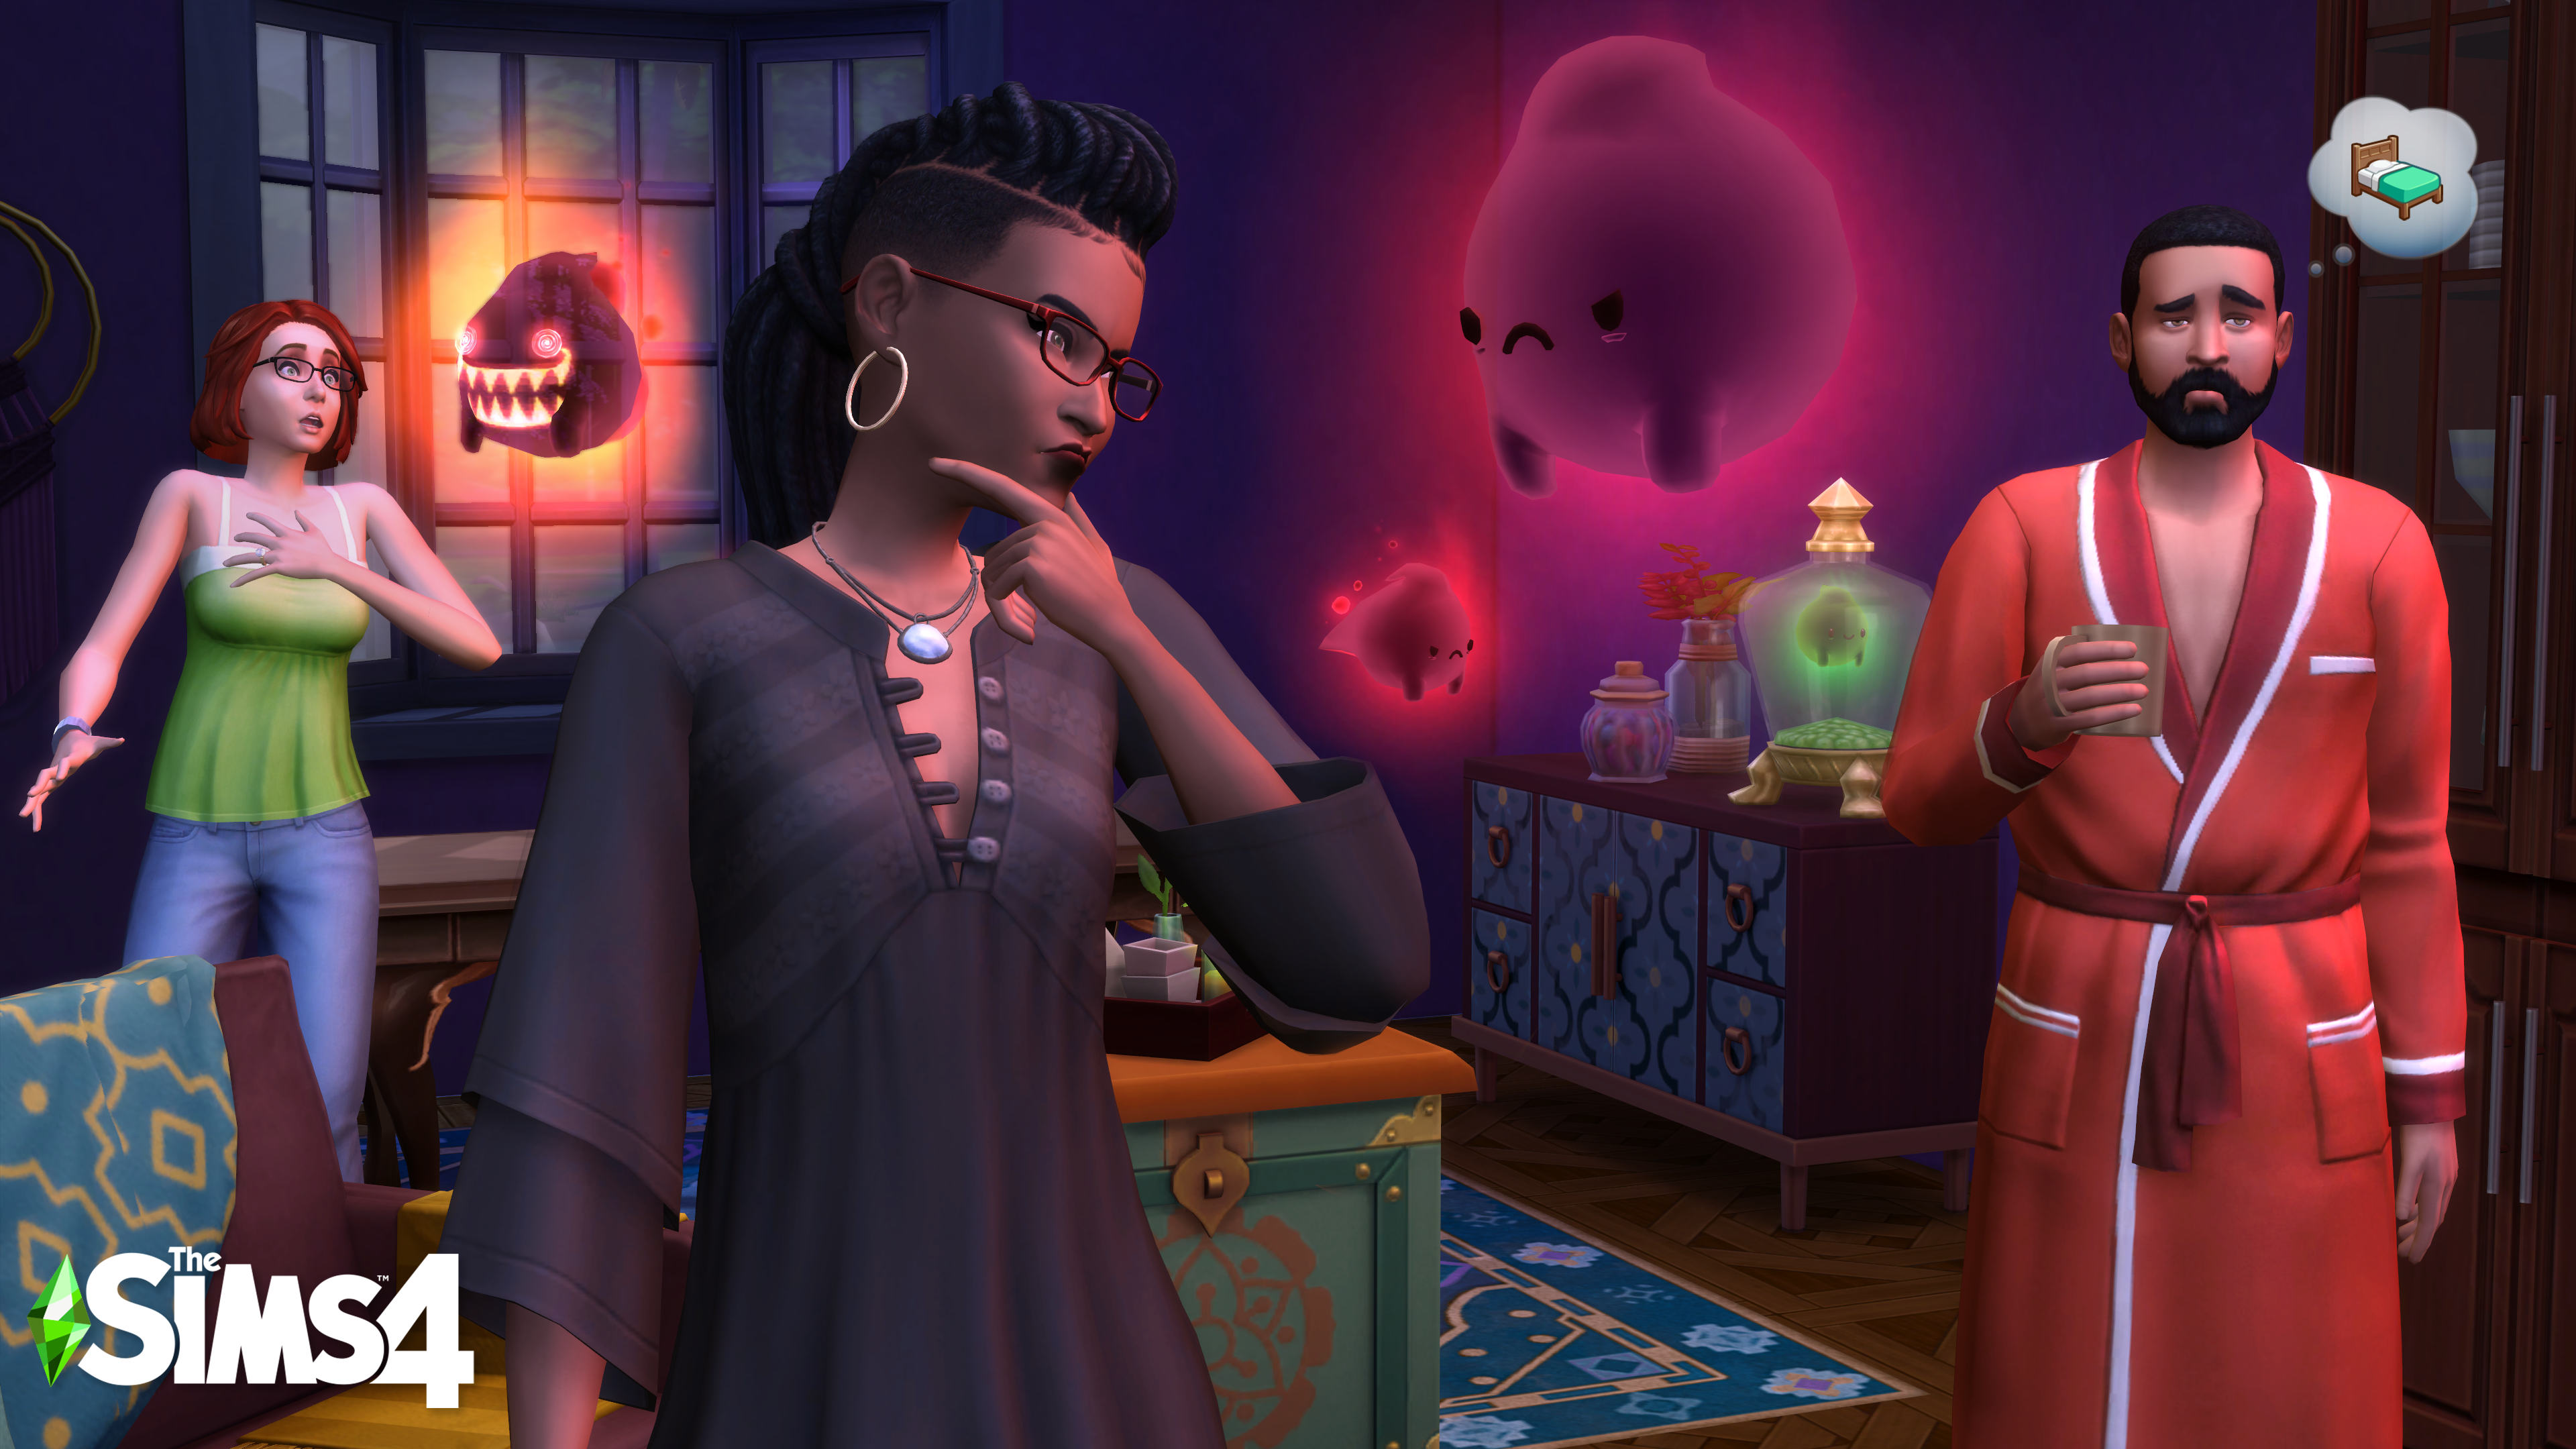 Sims 4 - first 2021 pack announced with a returning character